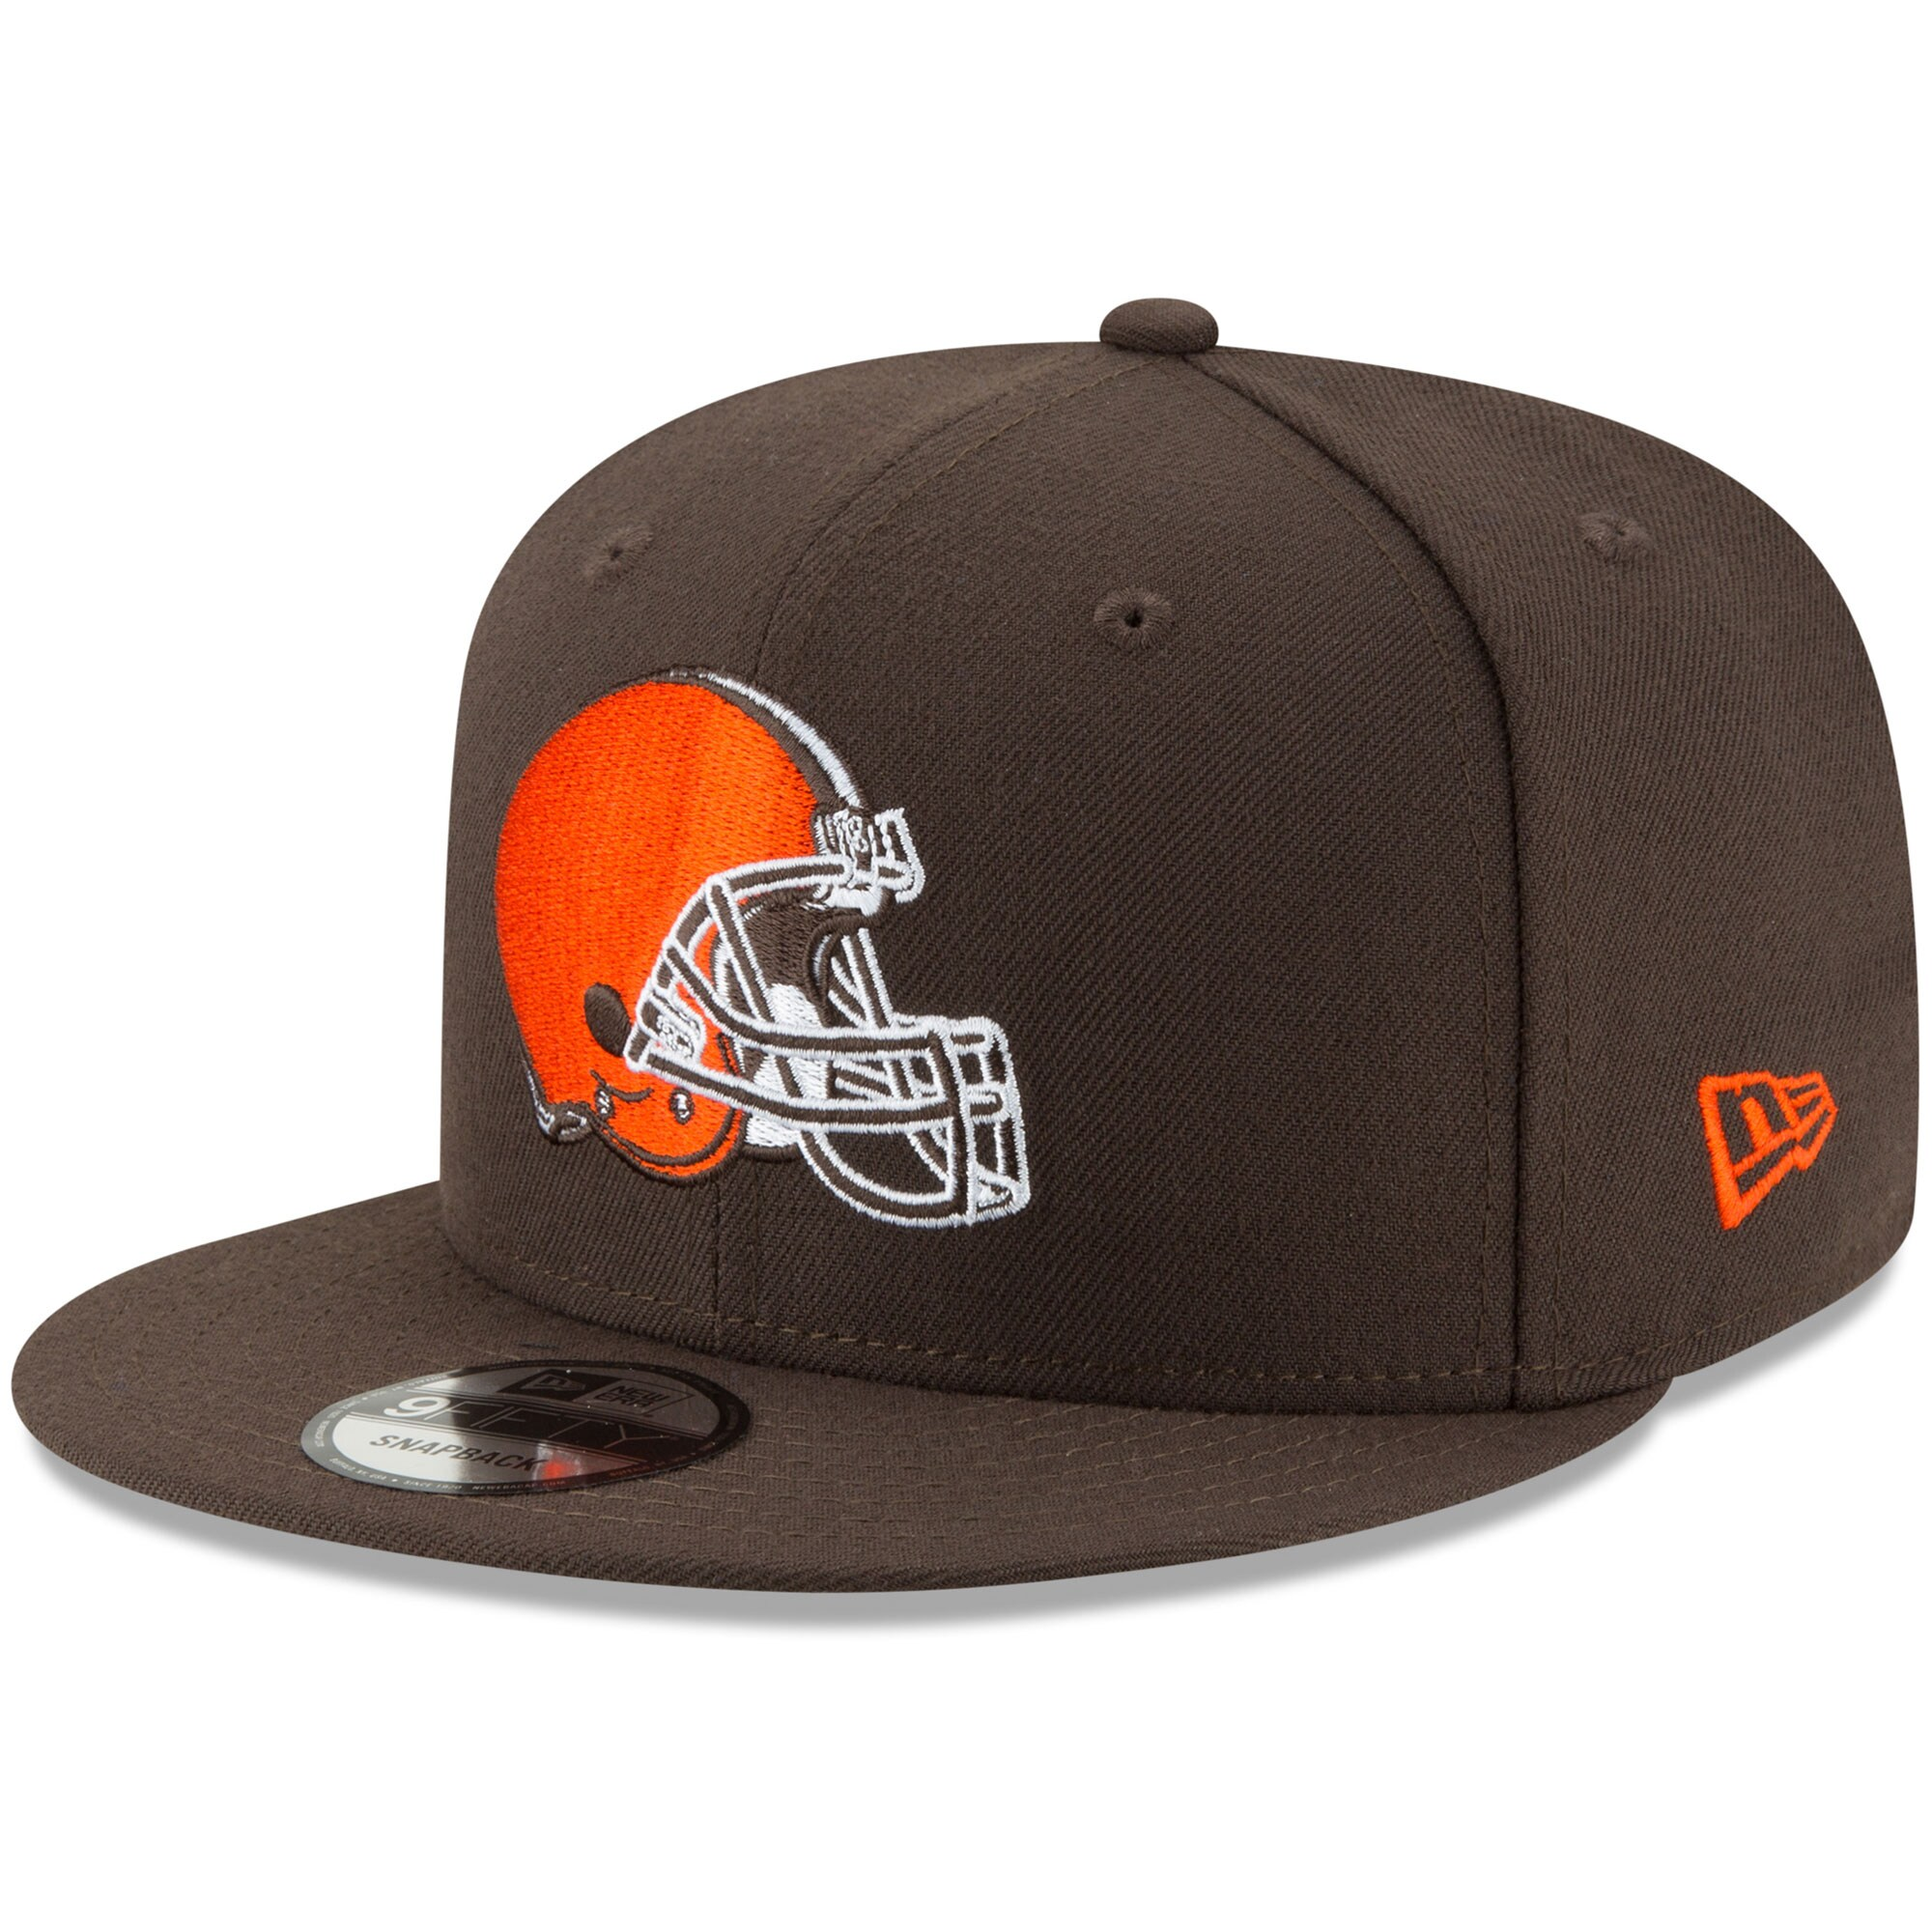 Cleveland Browns New Era Basic 9FIFTY Adjustable Snapback Hat - Brown